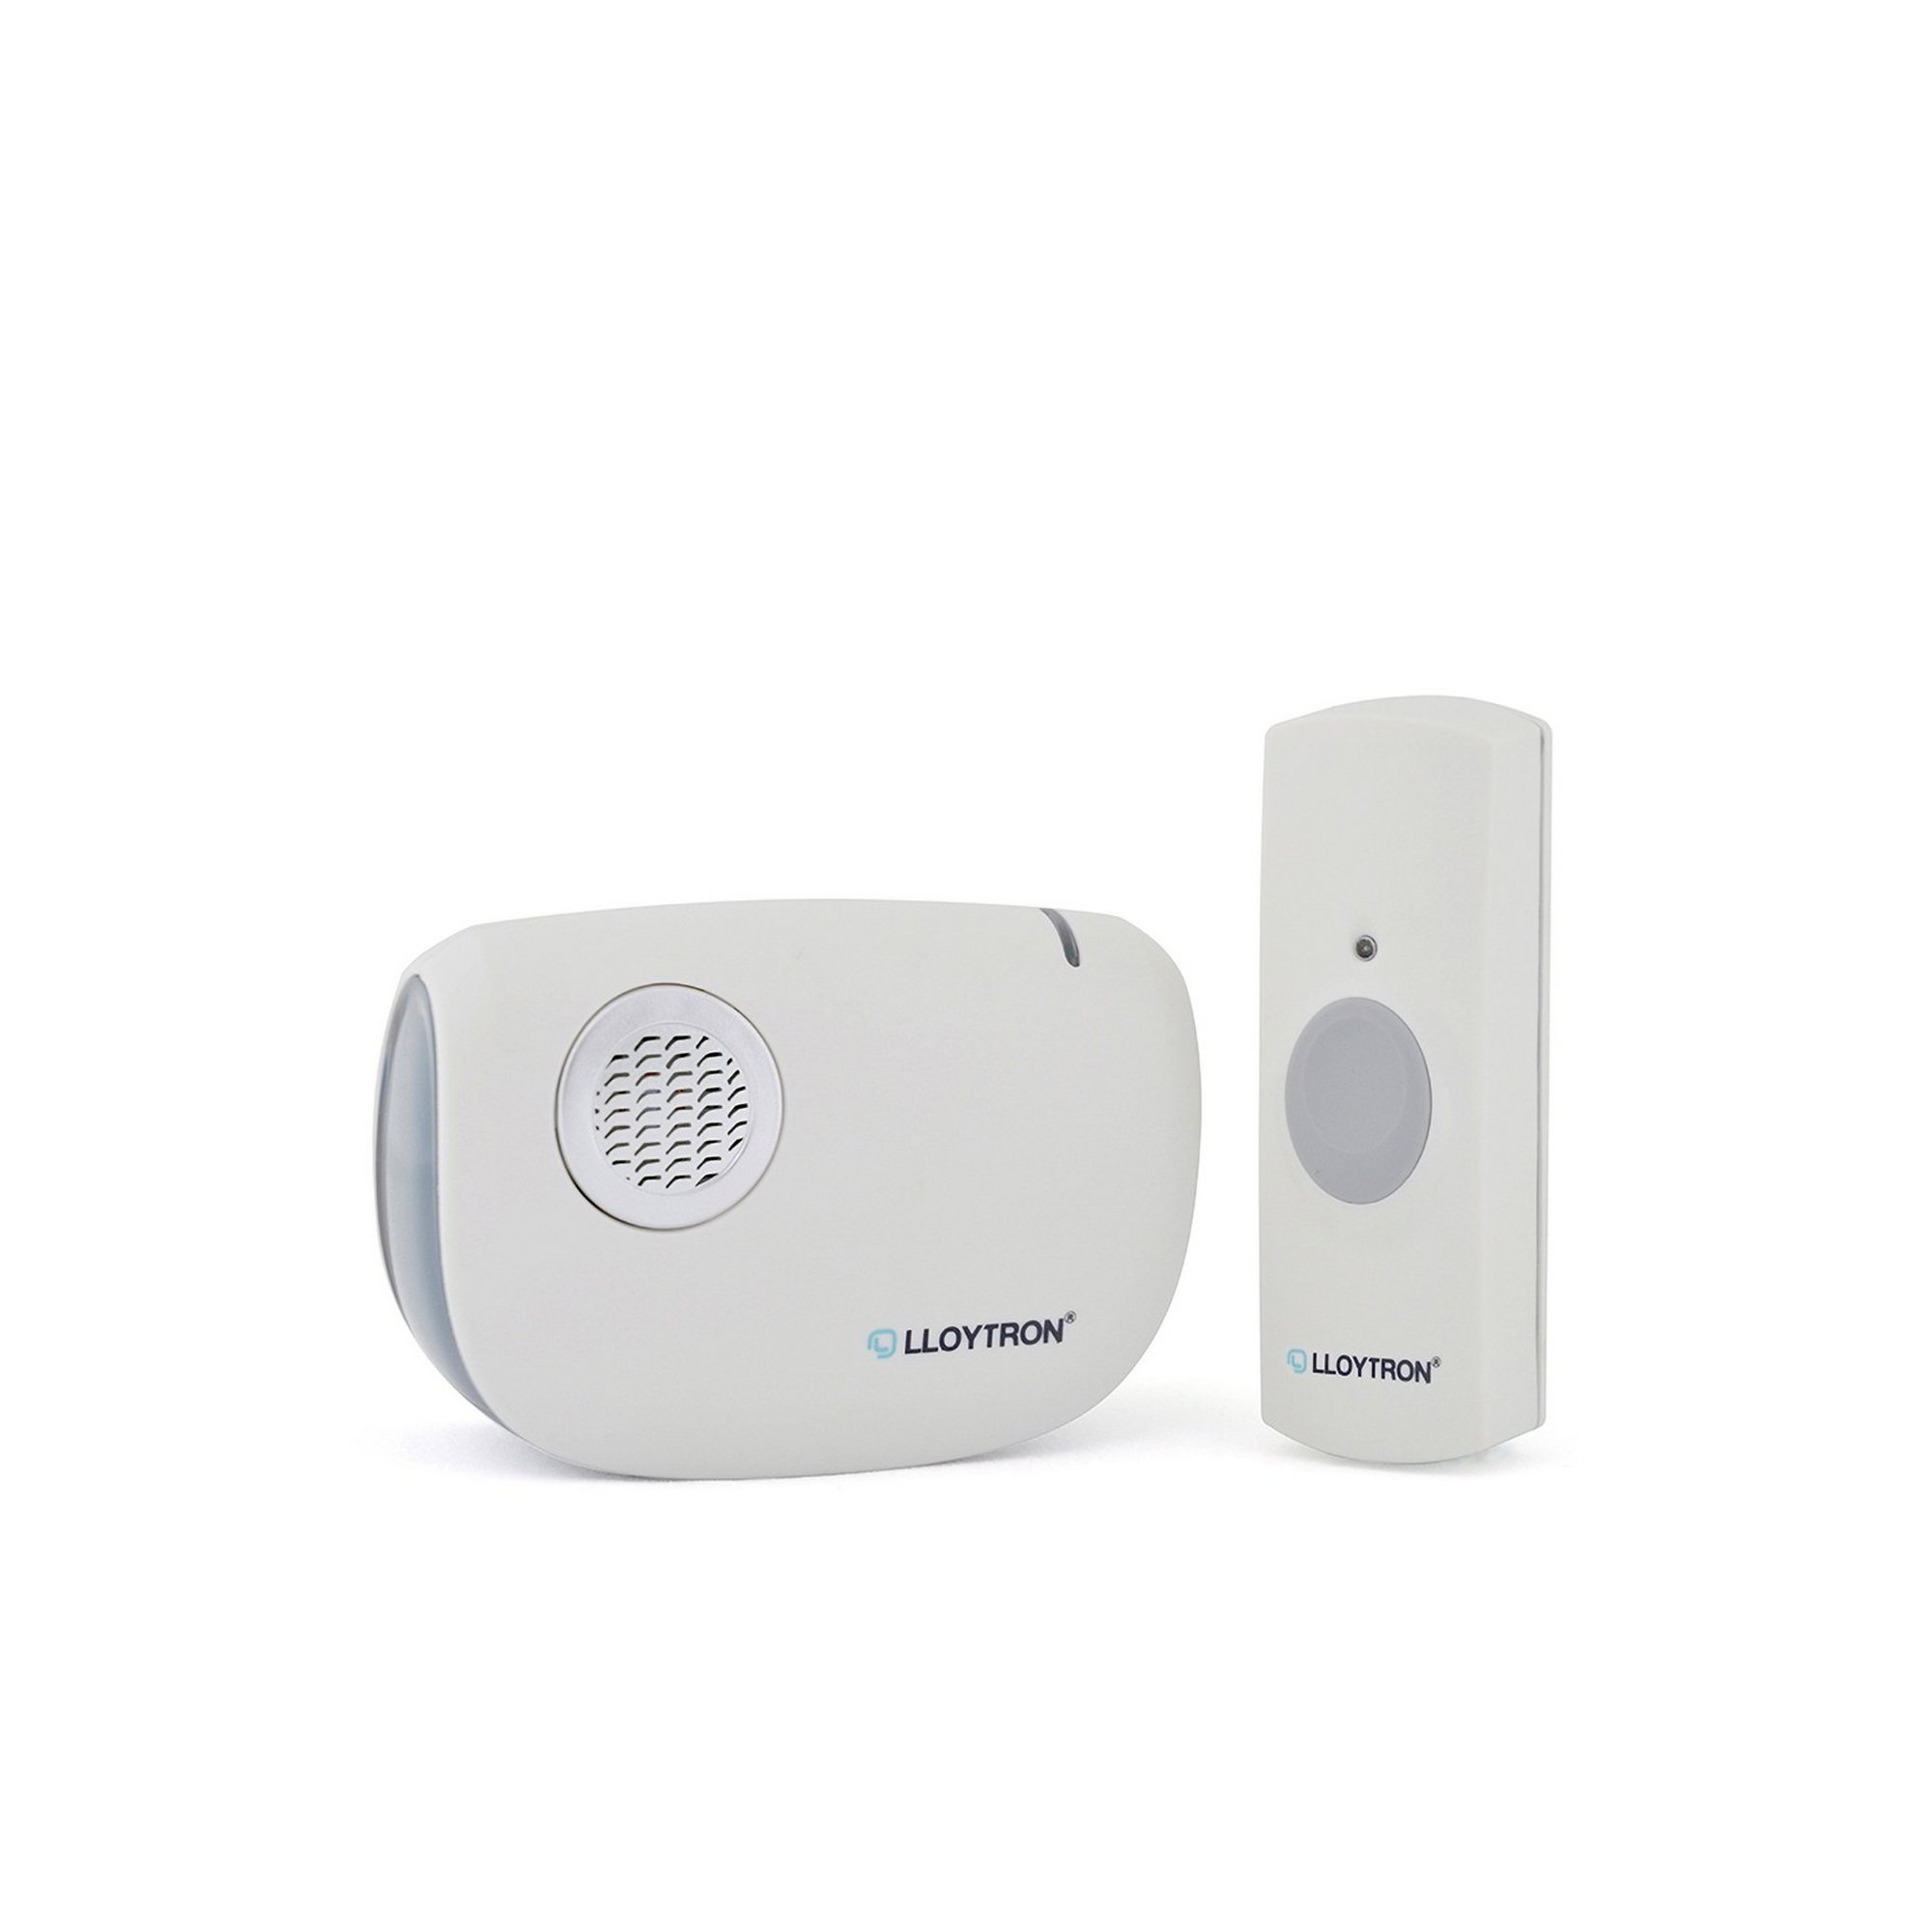 Image of Dingdong Mip3 Battery Operated Portable Door Chime Kit - White